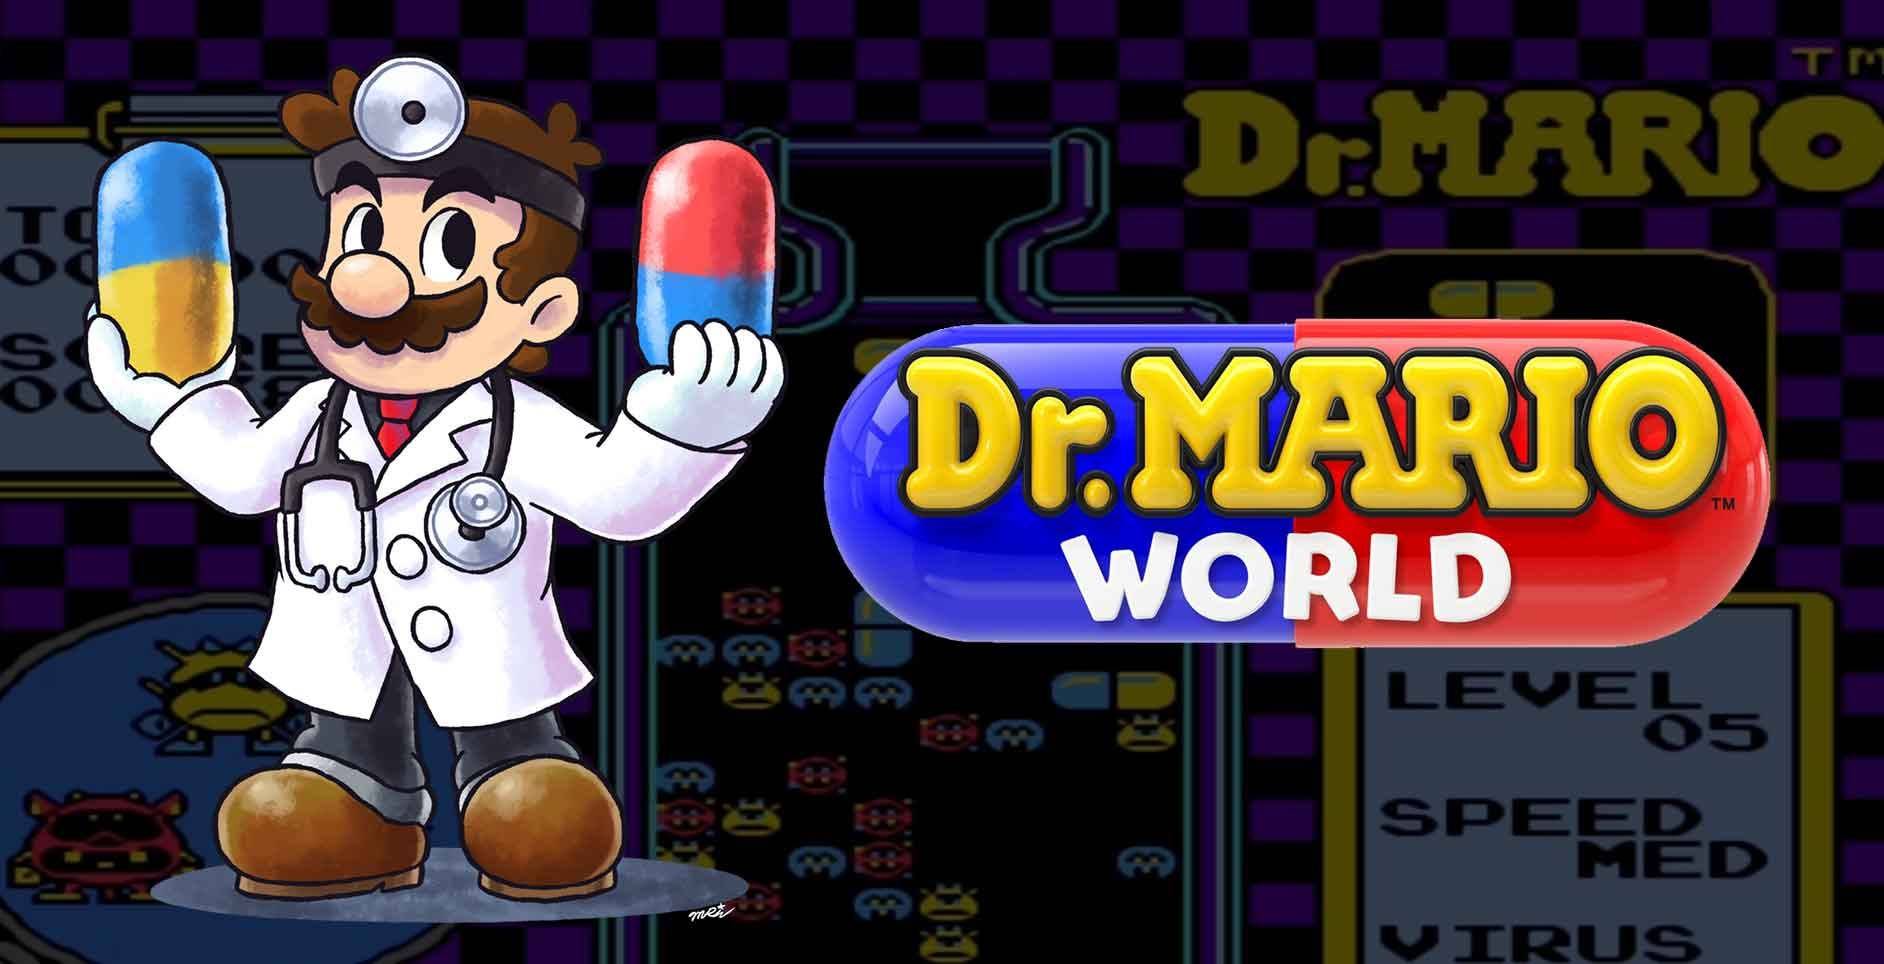 Dr. Mario World Game iOS